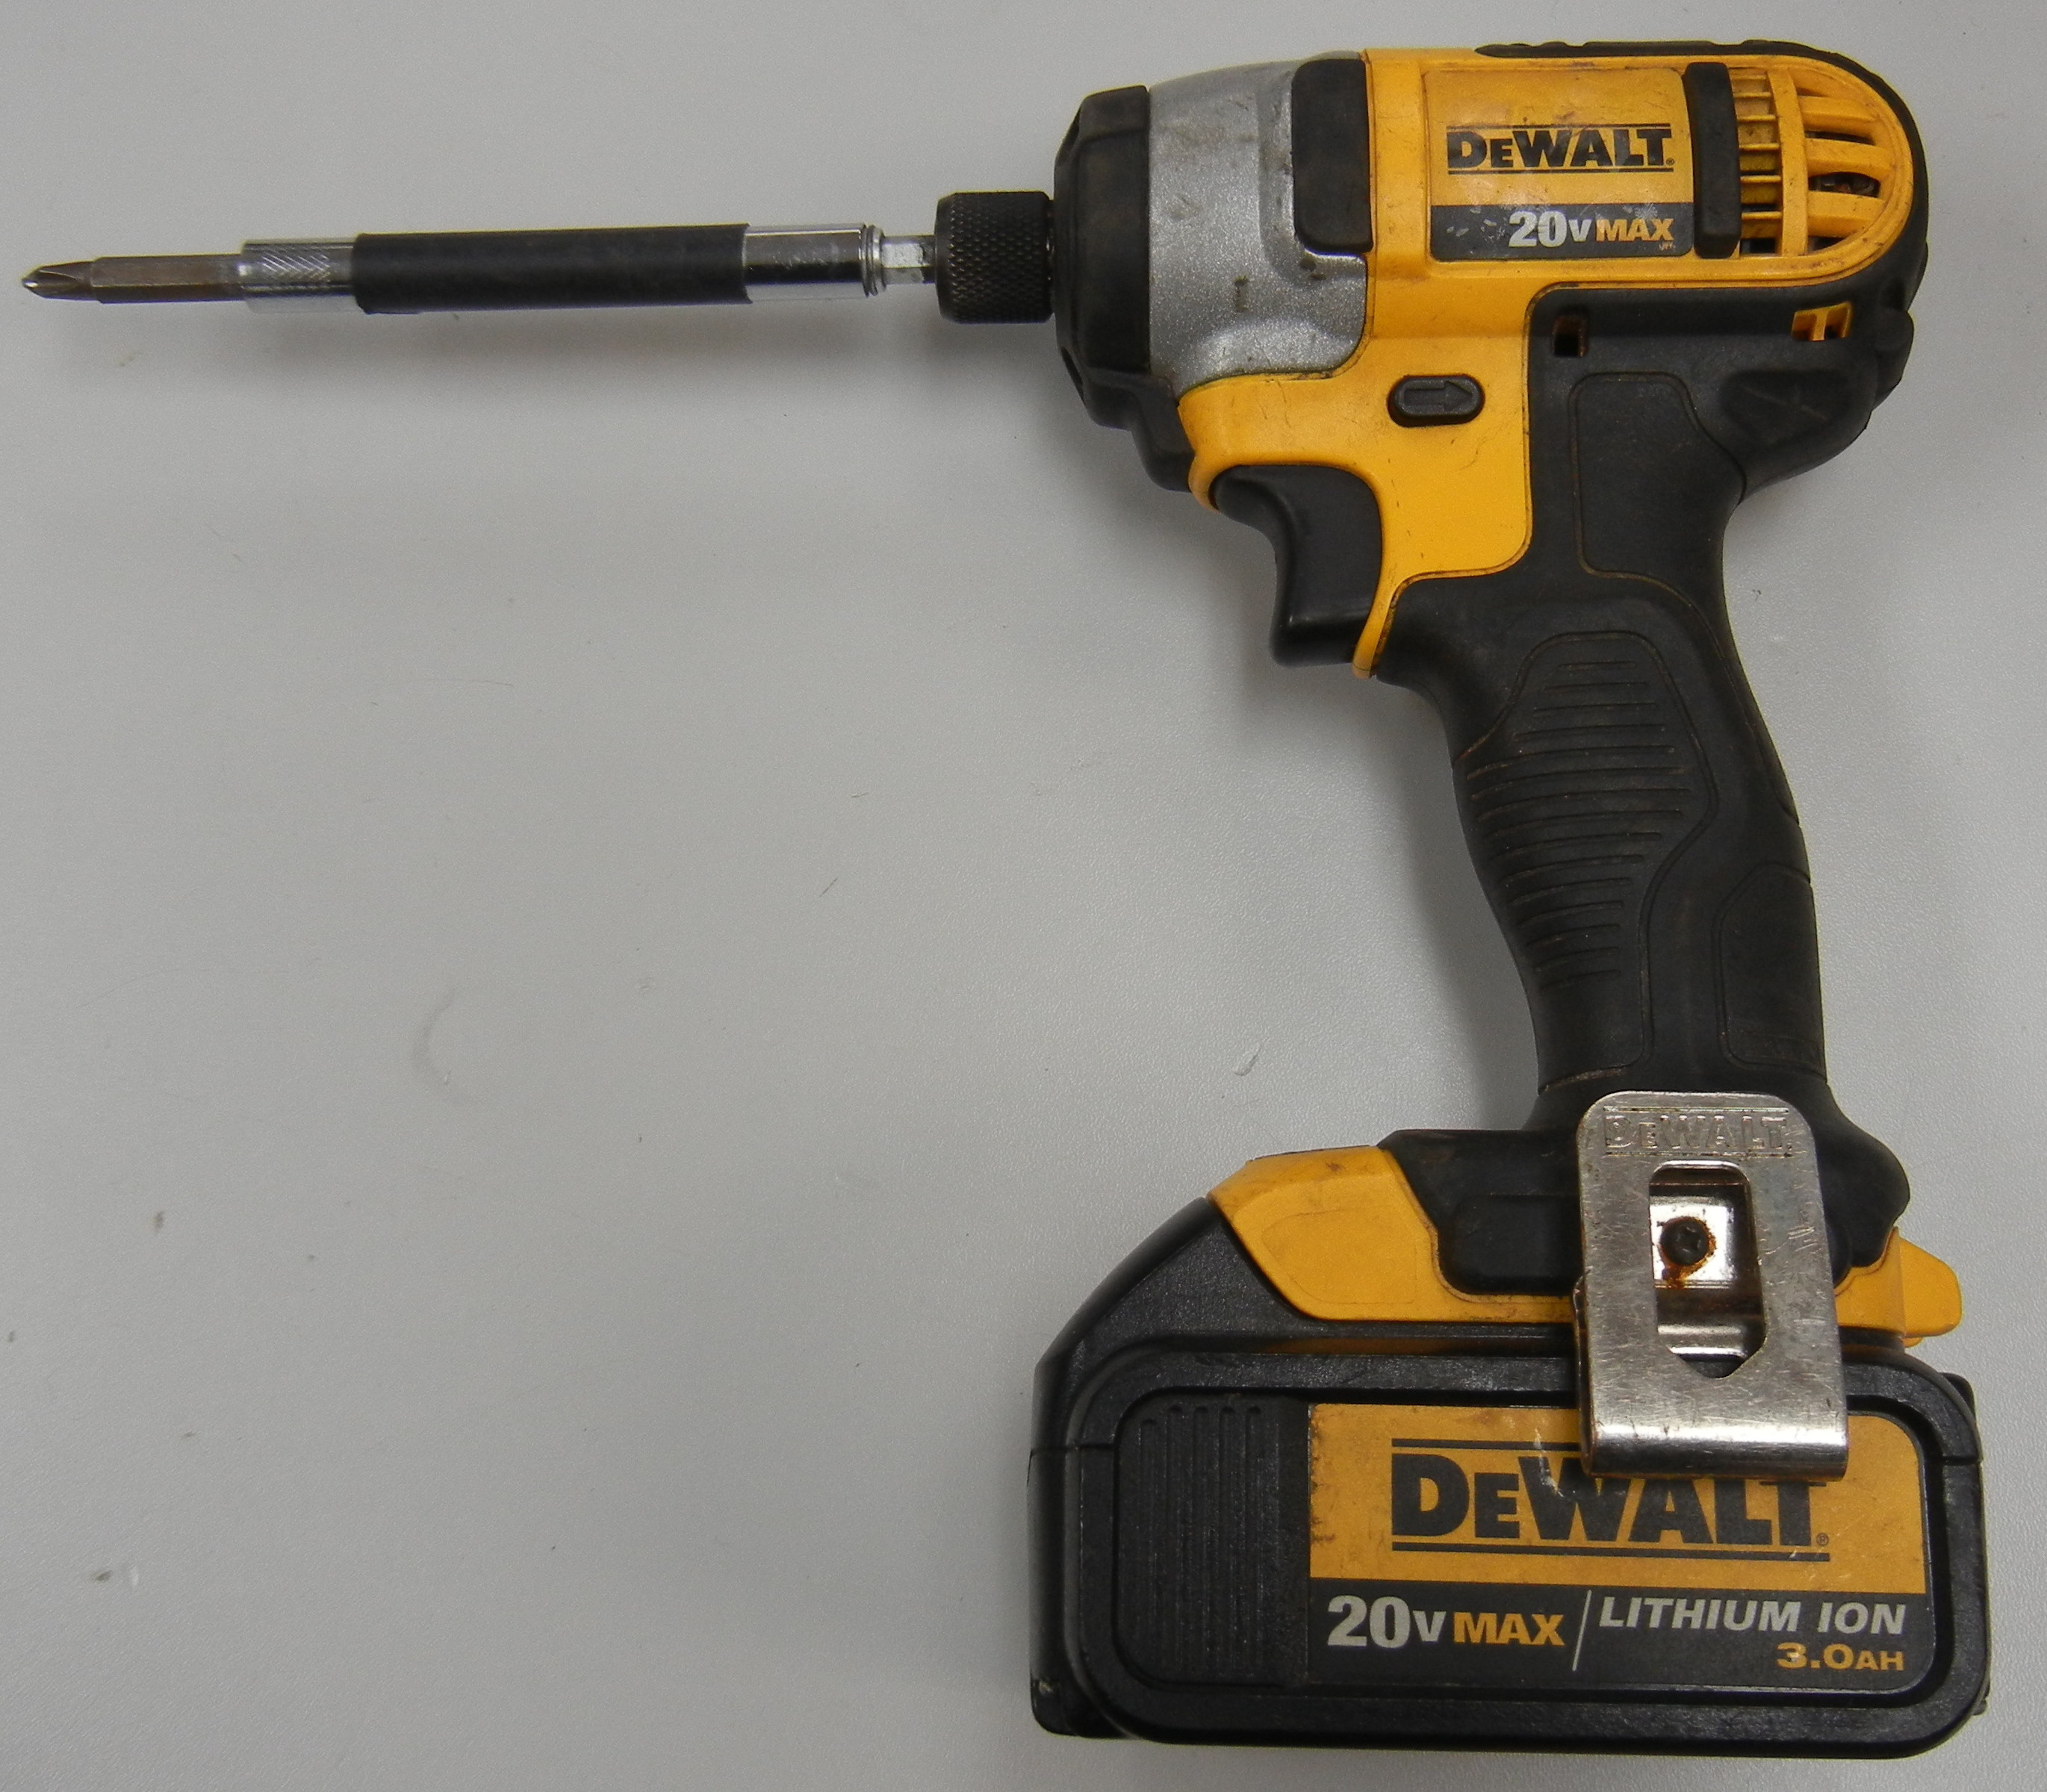 DEWALT - DCF885 - HAMMER DRILL - BODY AND BATTERY